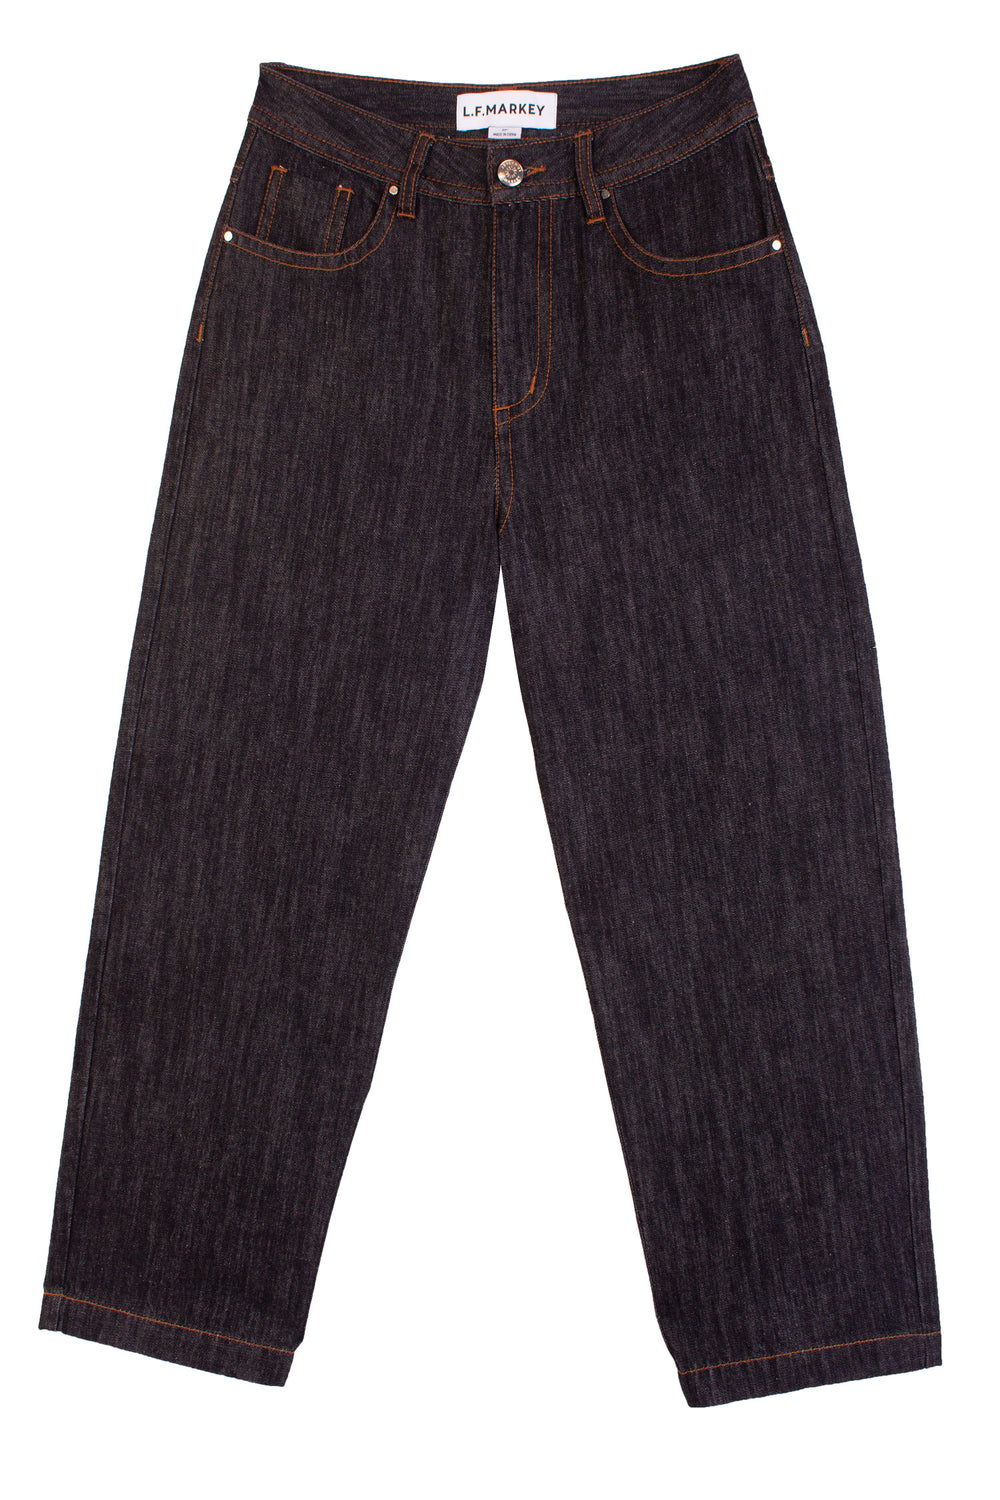 Big Boys Jeans Black Denim